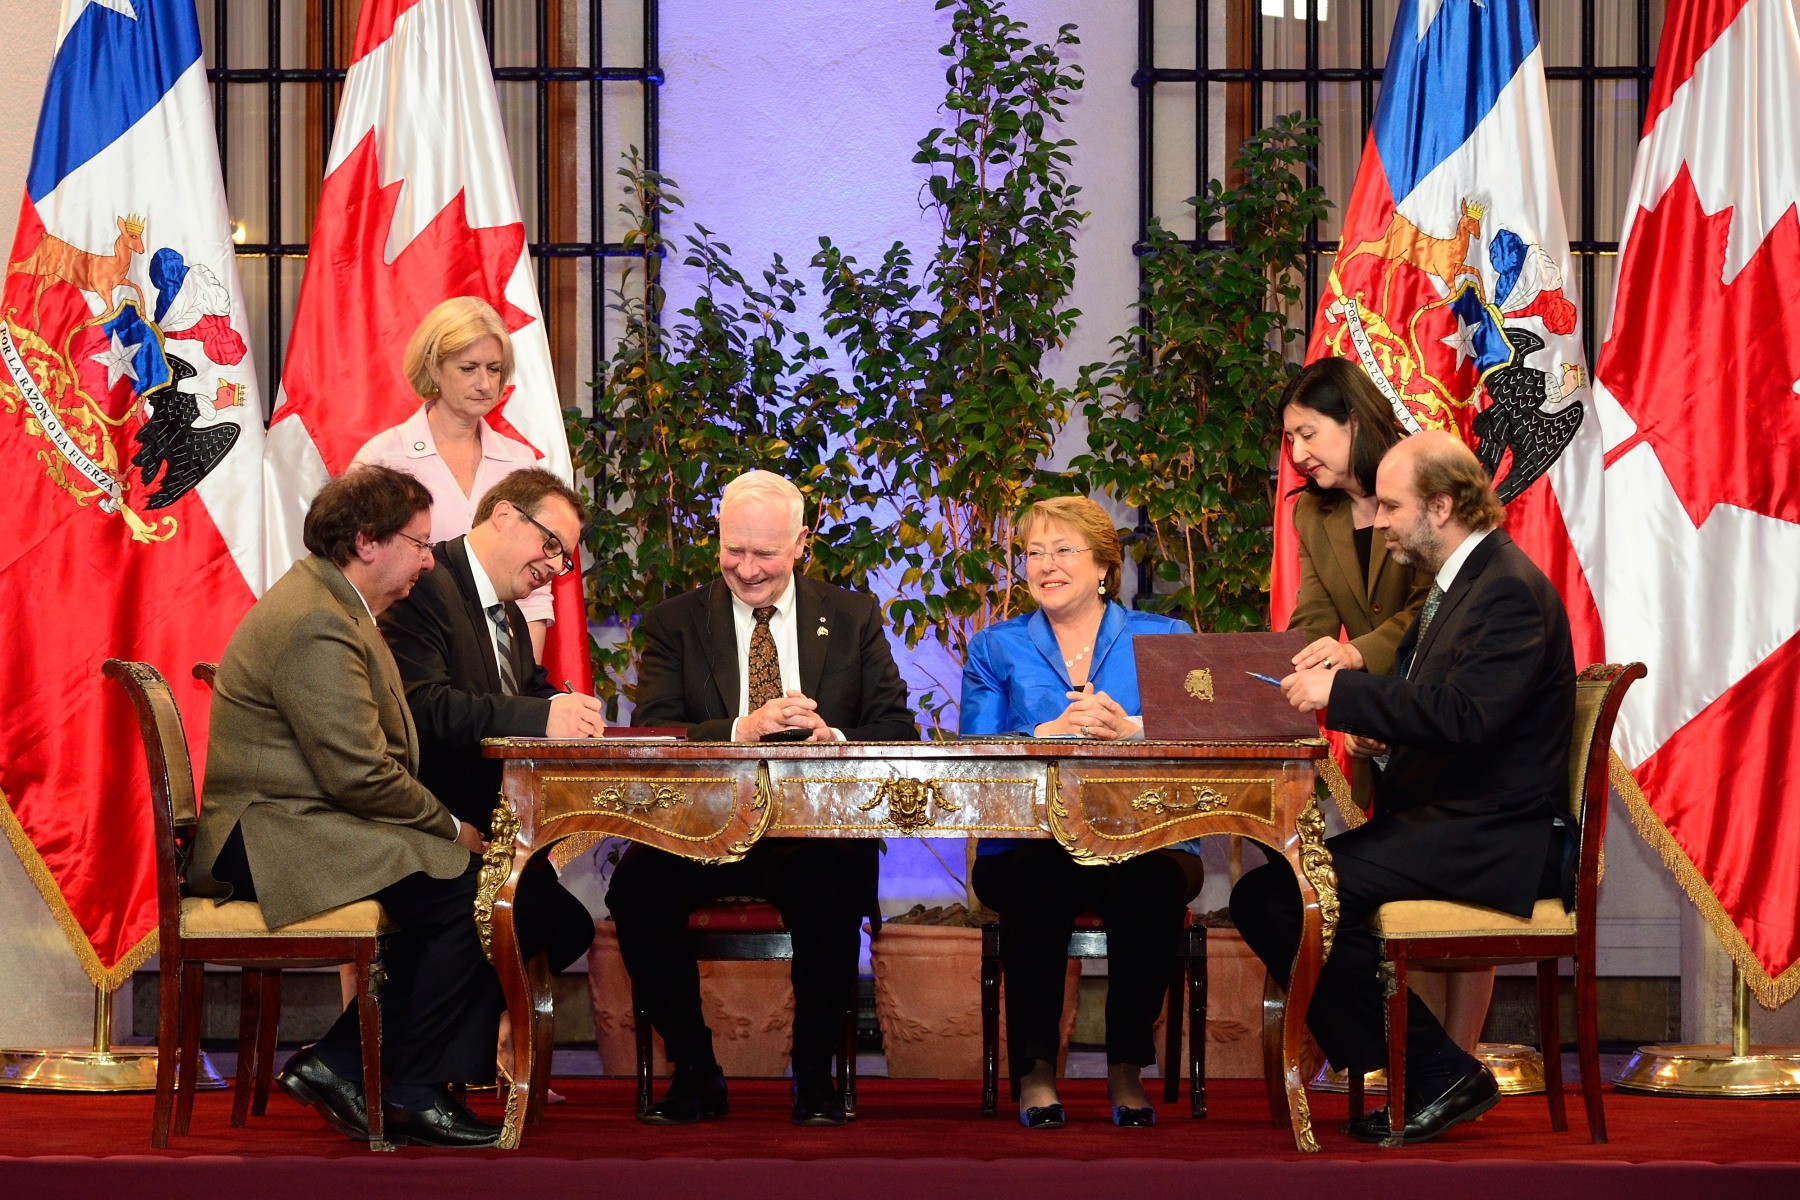 Before meeting members of the media, His Excellency and President Bachelet took part in a signing ceremony.